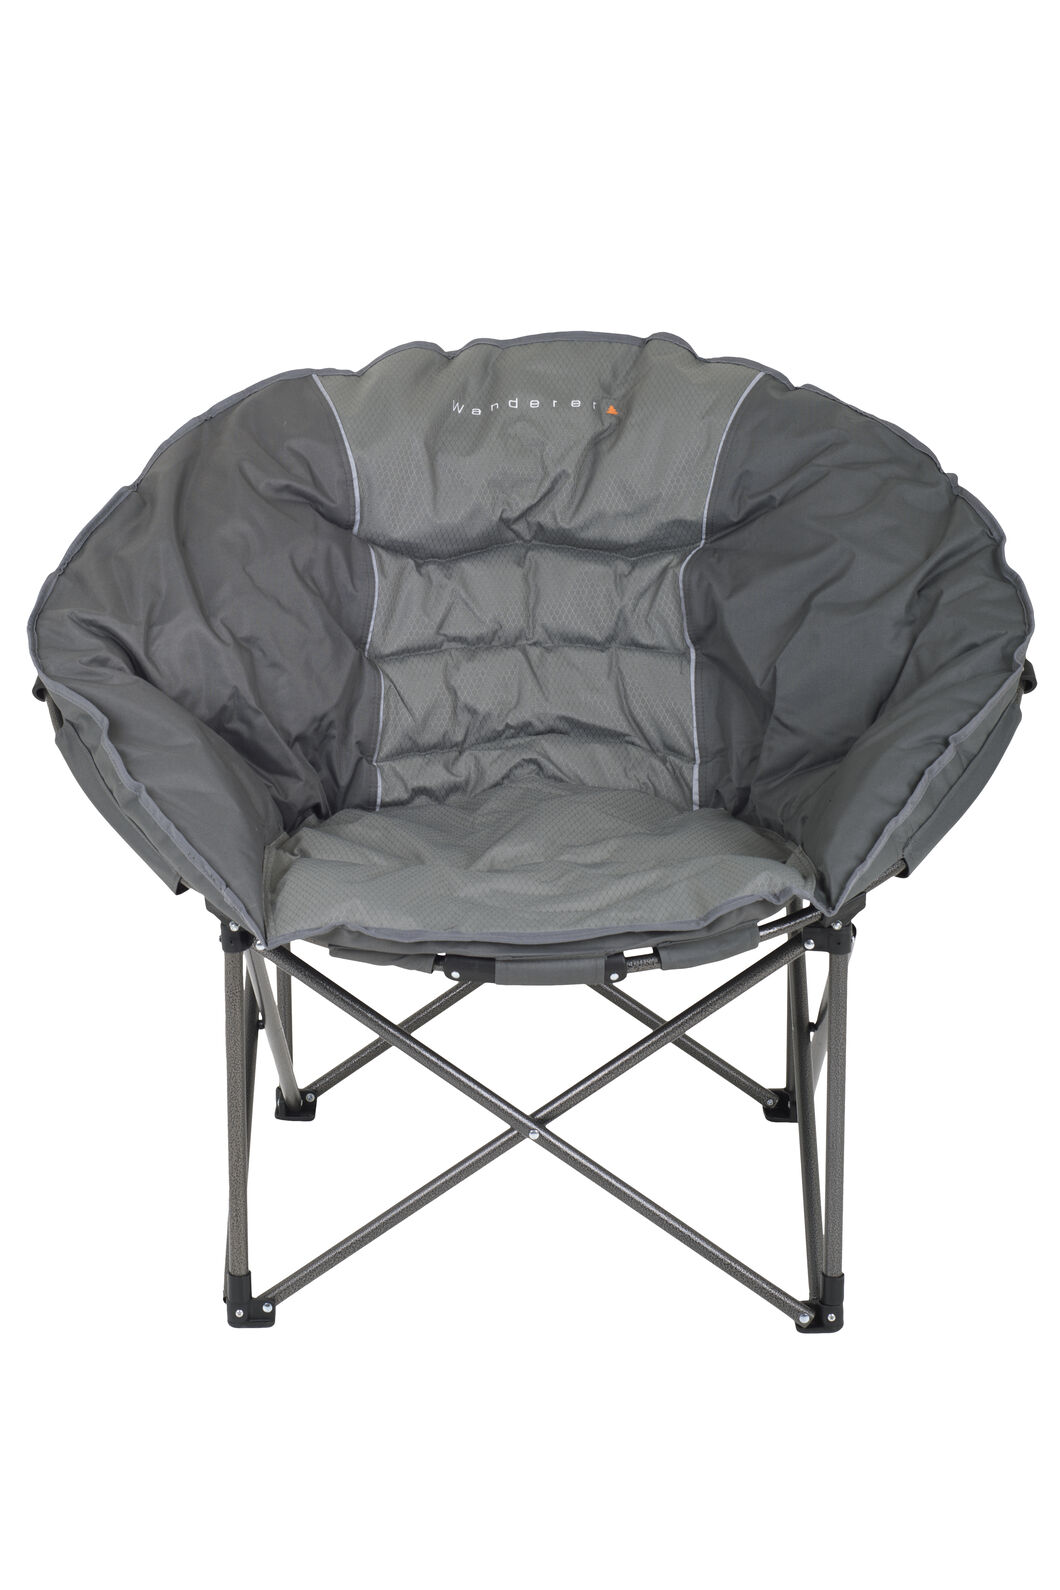 Wanderer Premium Moon Quad Fold Chair, None, hi-res